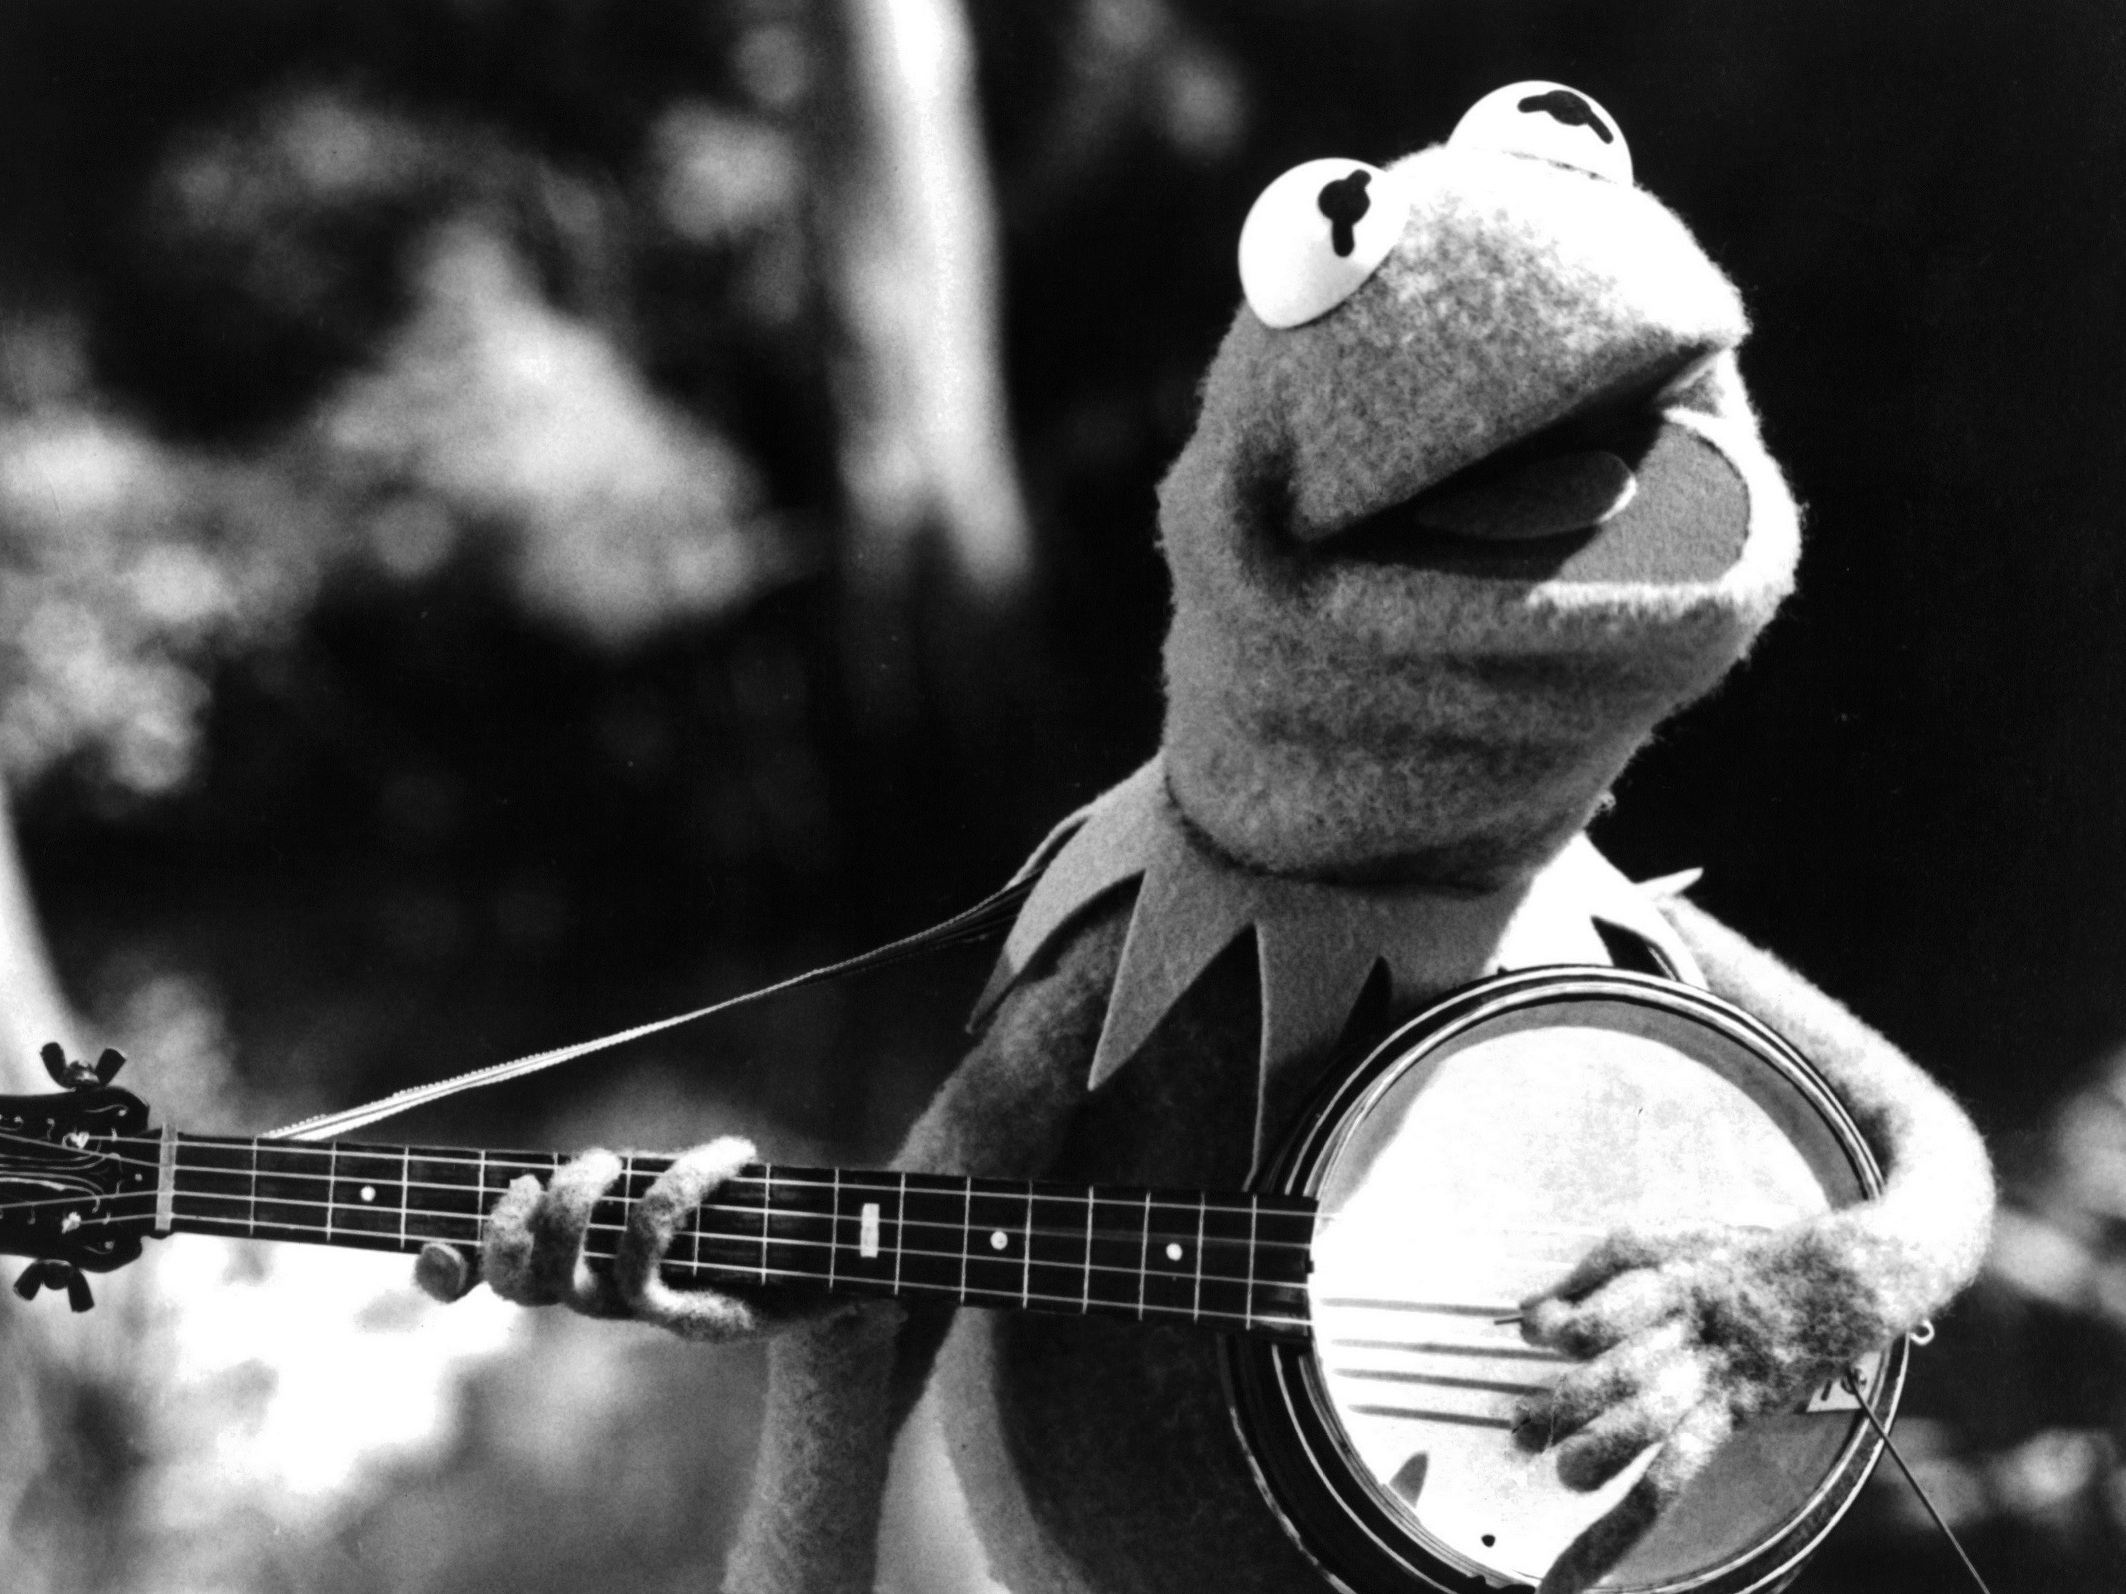 Rainbows, Frogs, Dogs And 'The Muppet Movie' Soundtrack At 40